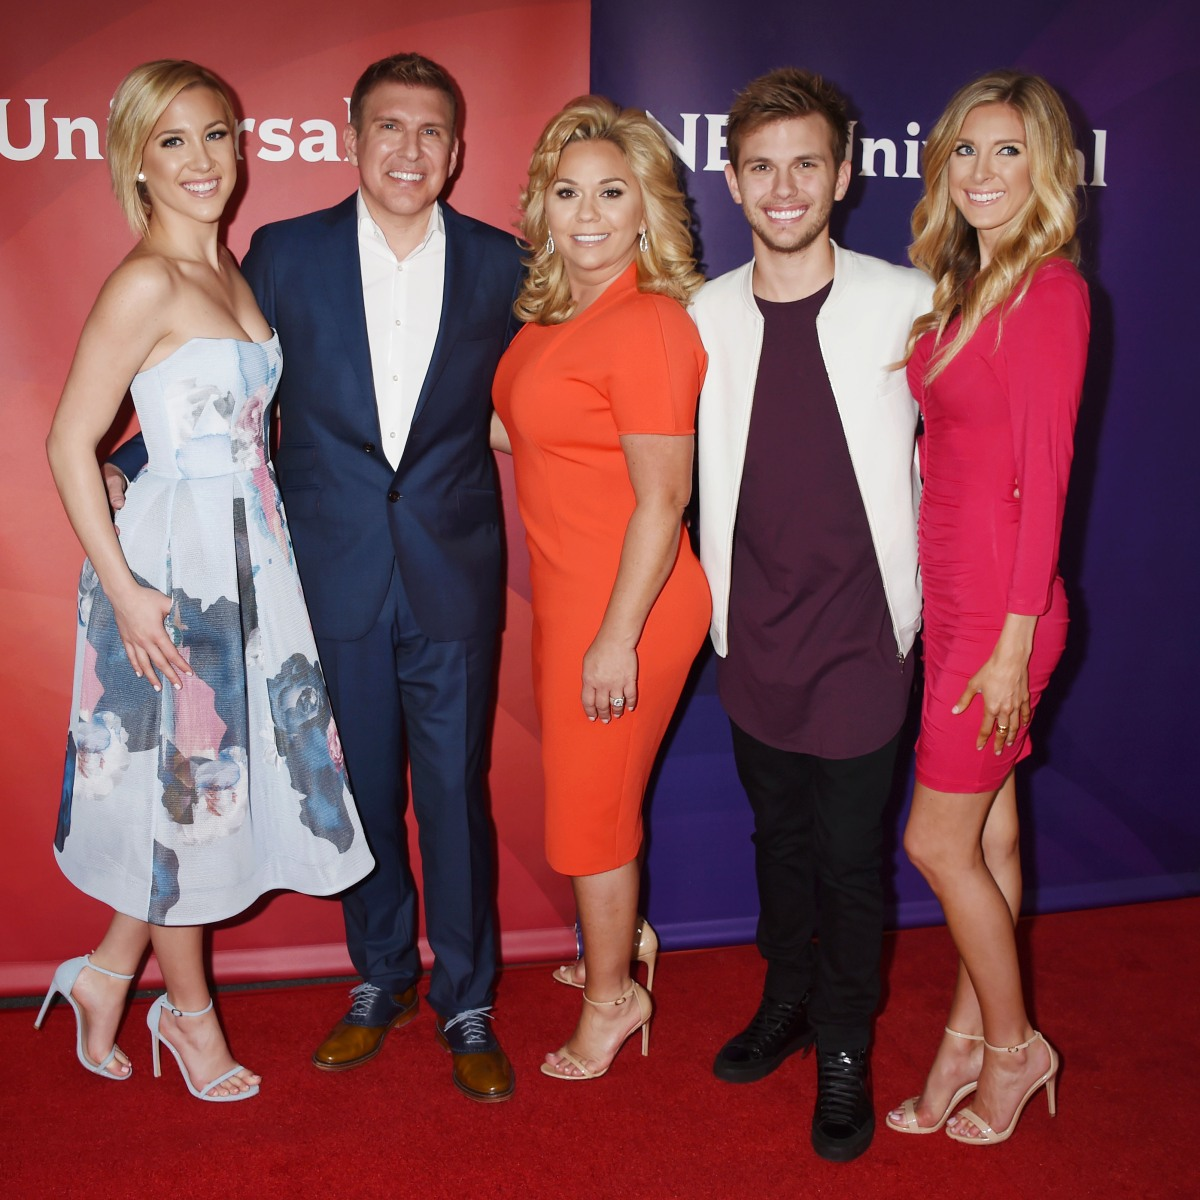 Exclusive'Chrisley Knows Best' Star Todd Chrisley Gives an Uplifting Update About Their Dog's Cancer Scare